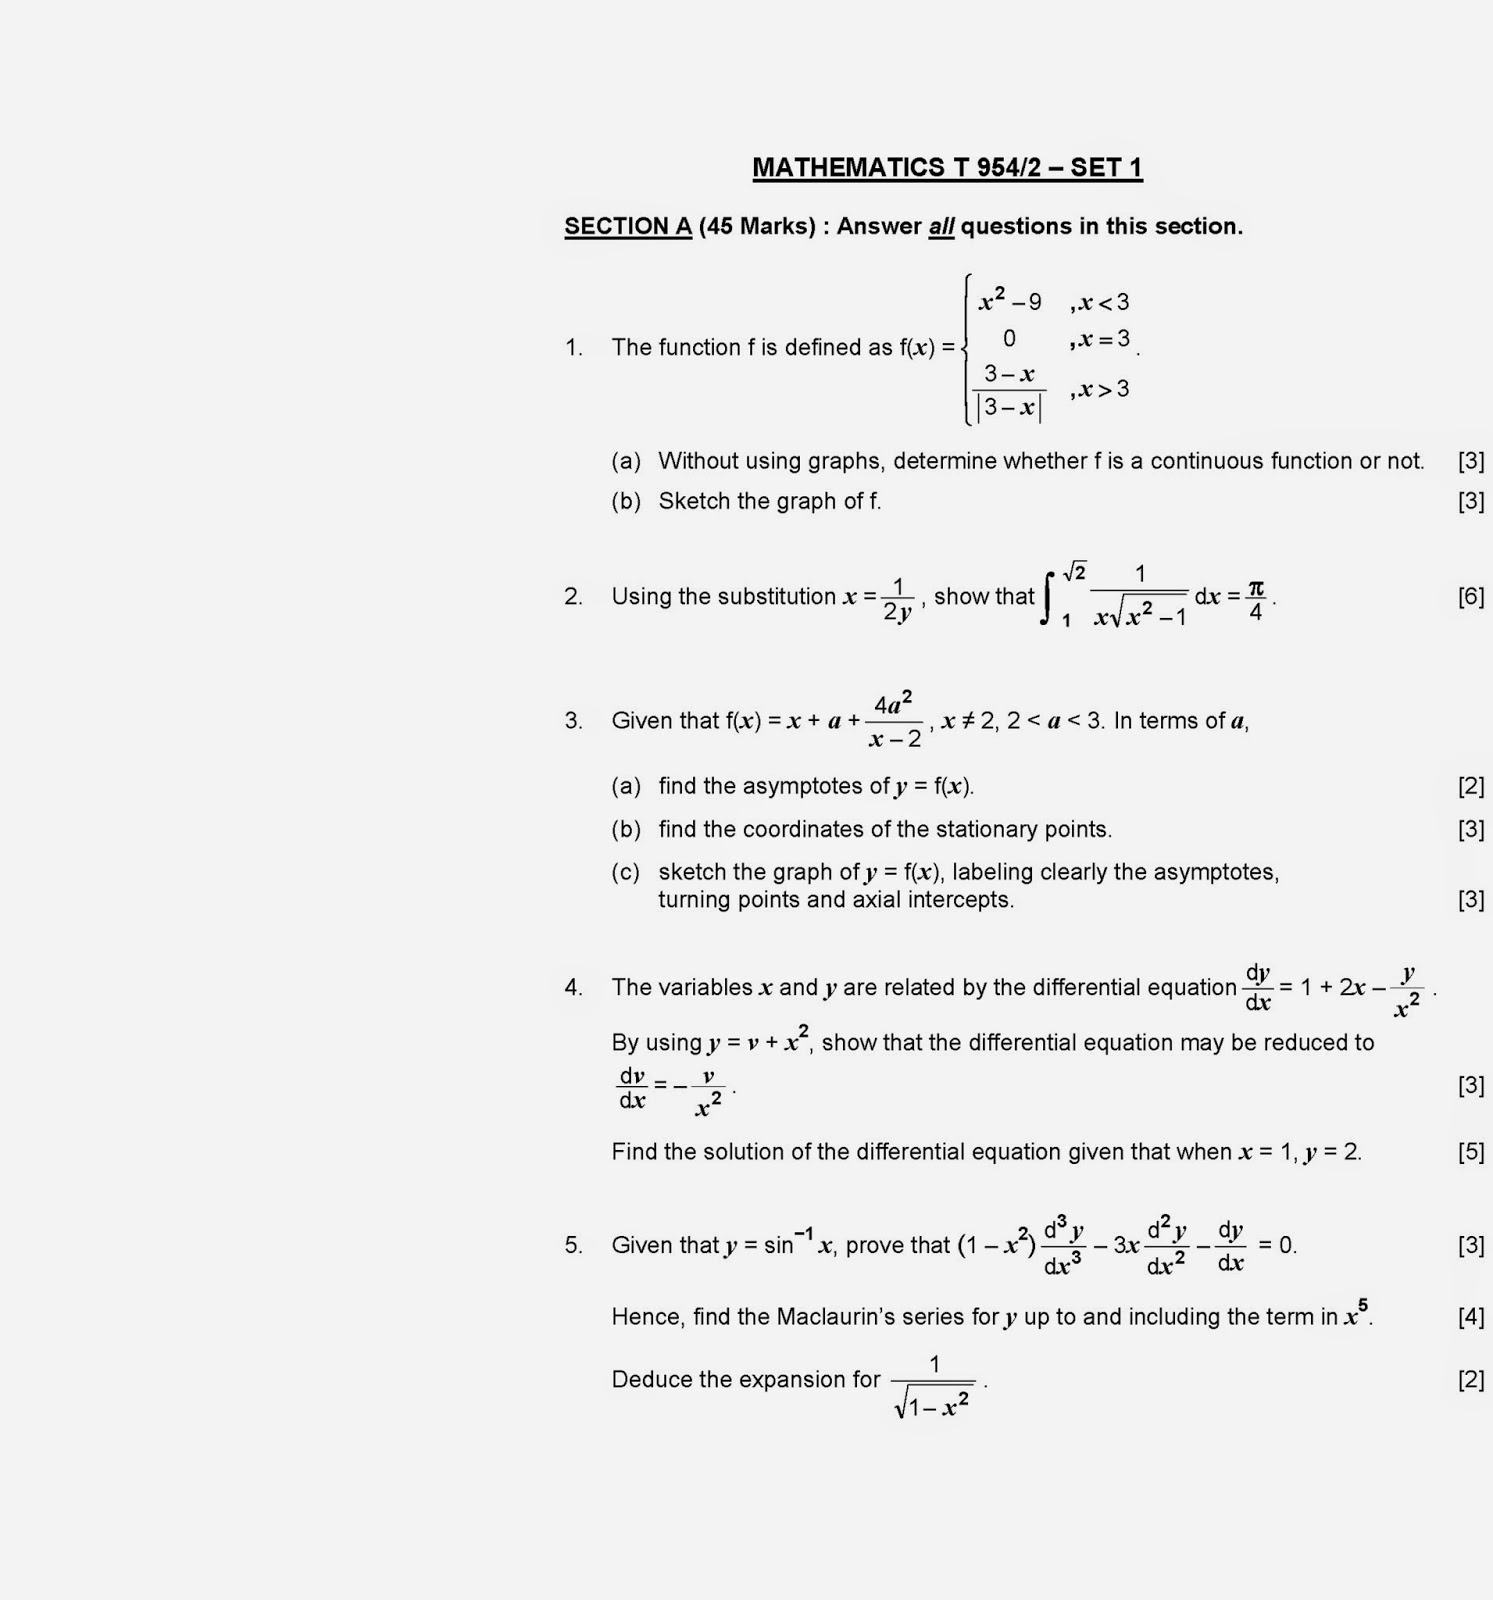 stpm 954 math t coursework 2014